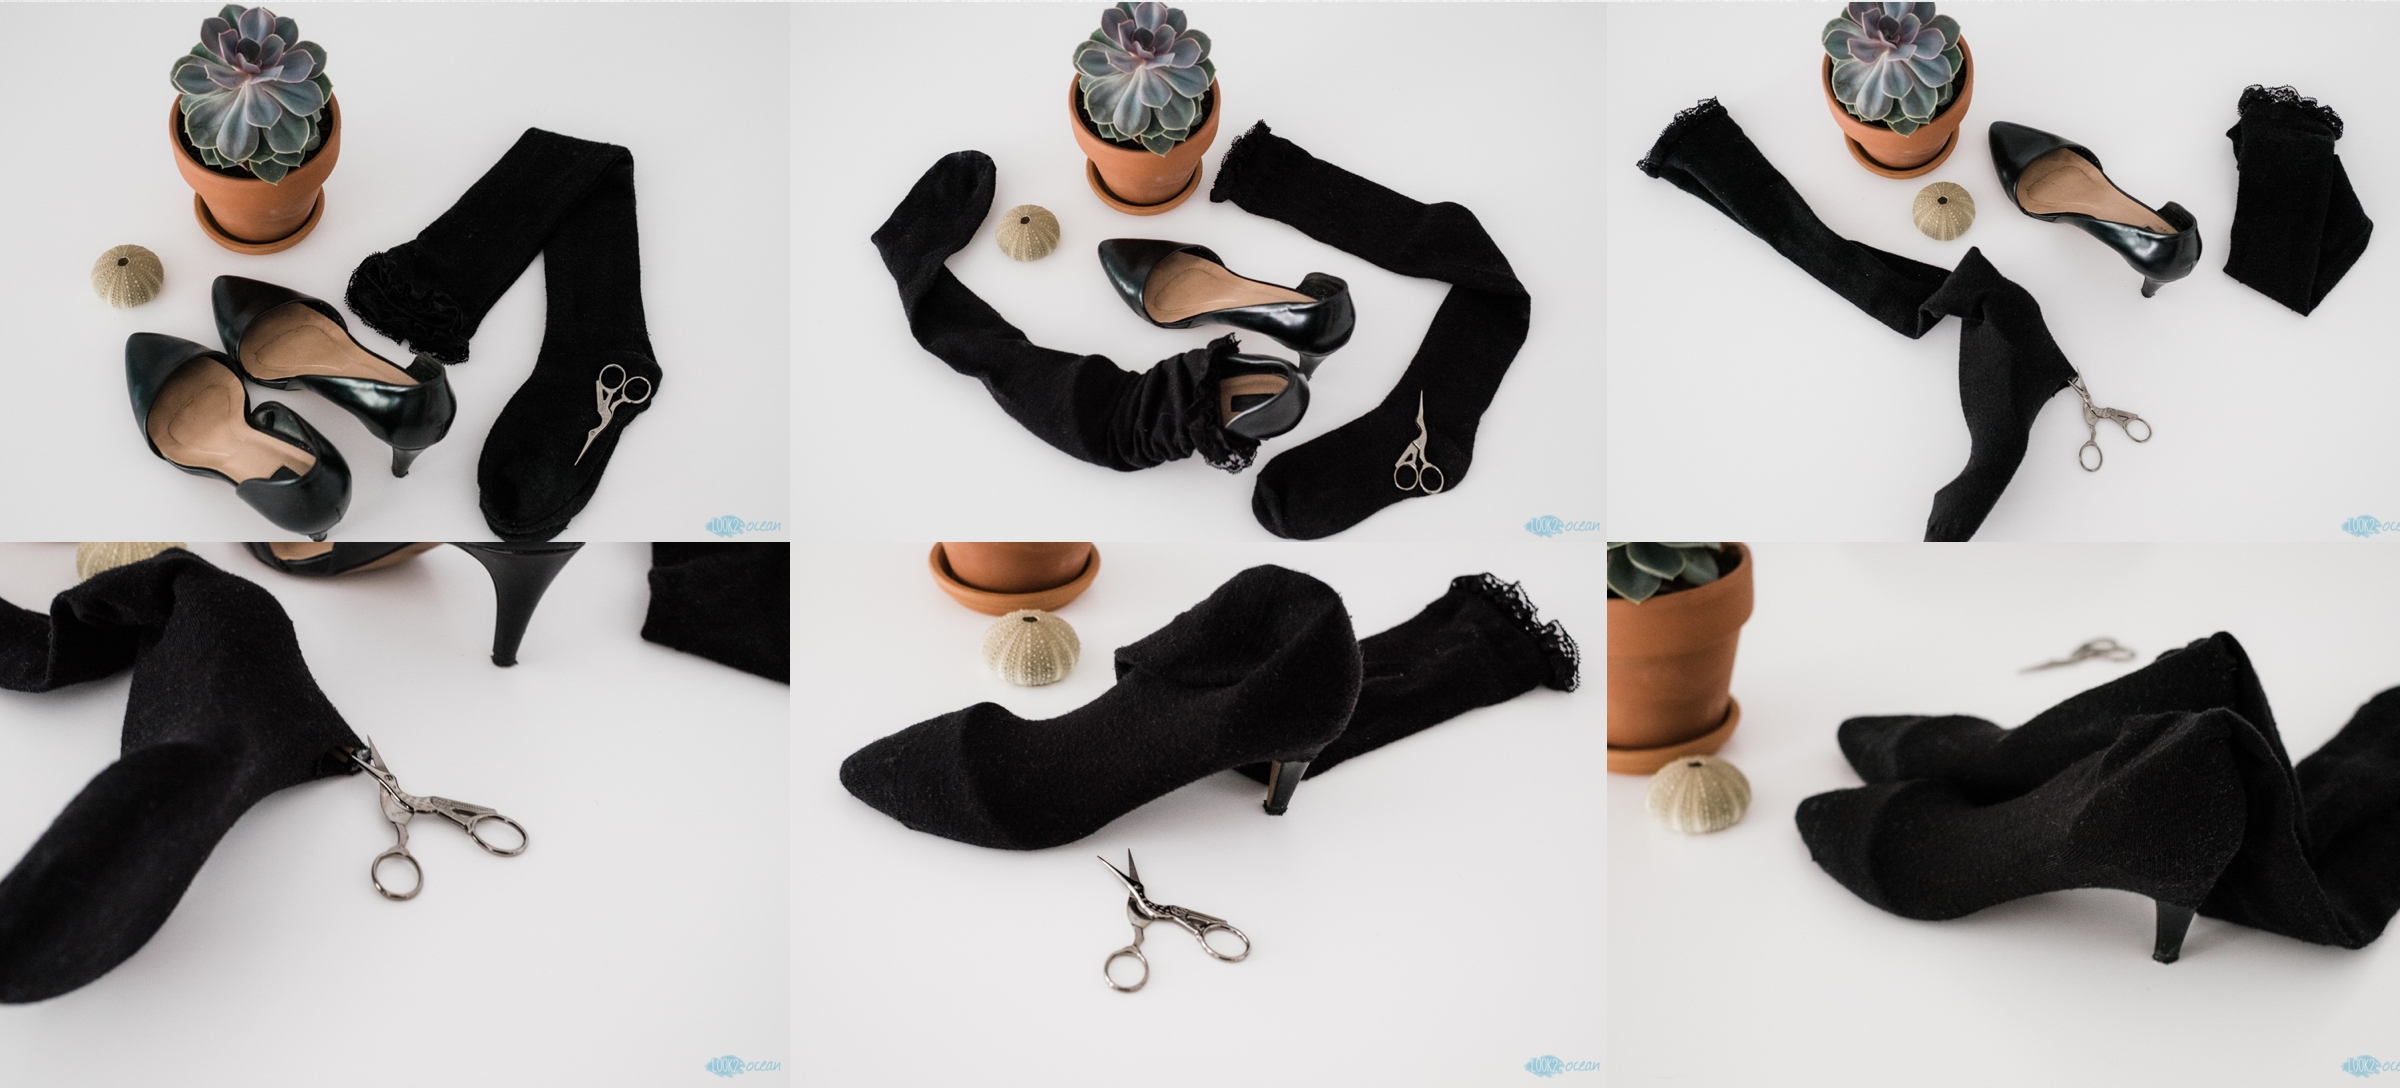 #diy #tutorial #sockboots #blacksocks #stilletos #scissors